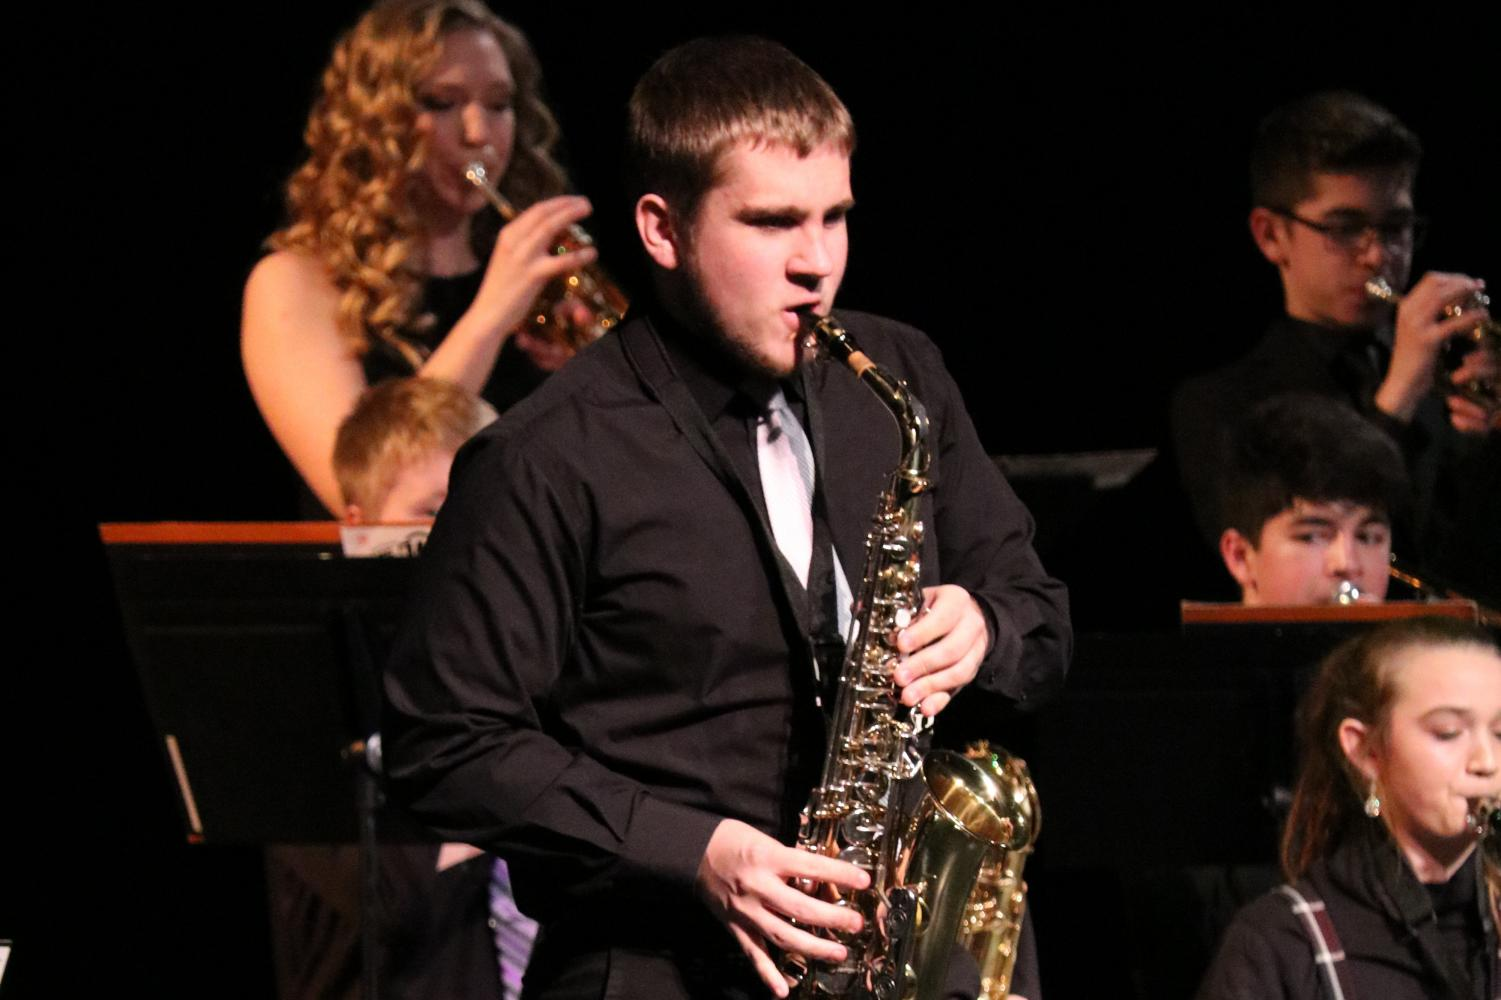 At Swing into Spring, junior Jacob Vaske plays the saxophone.